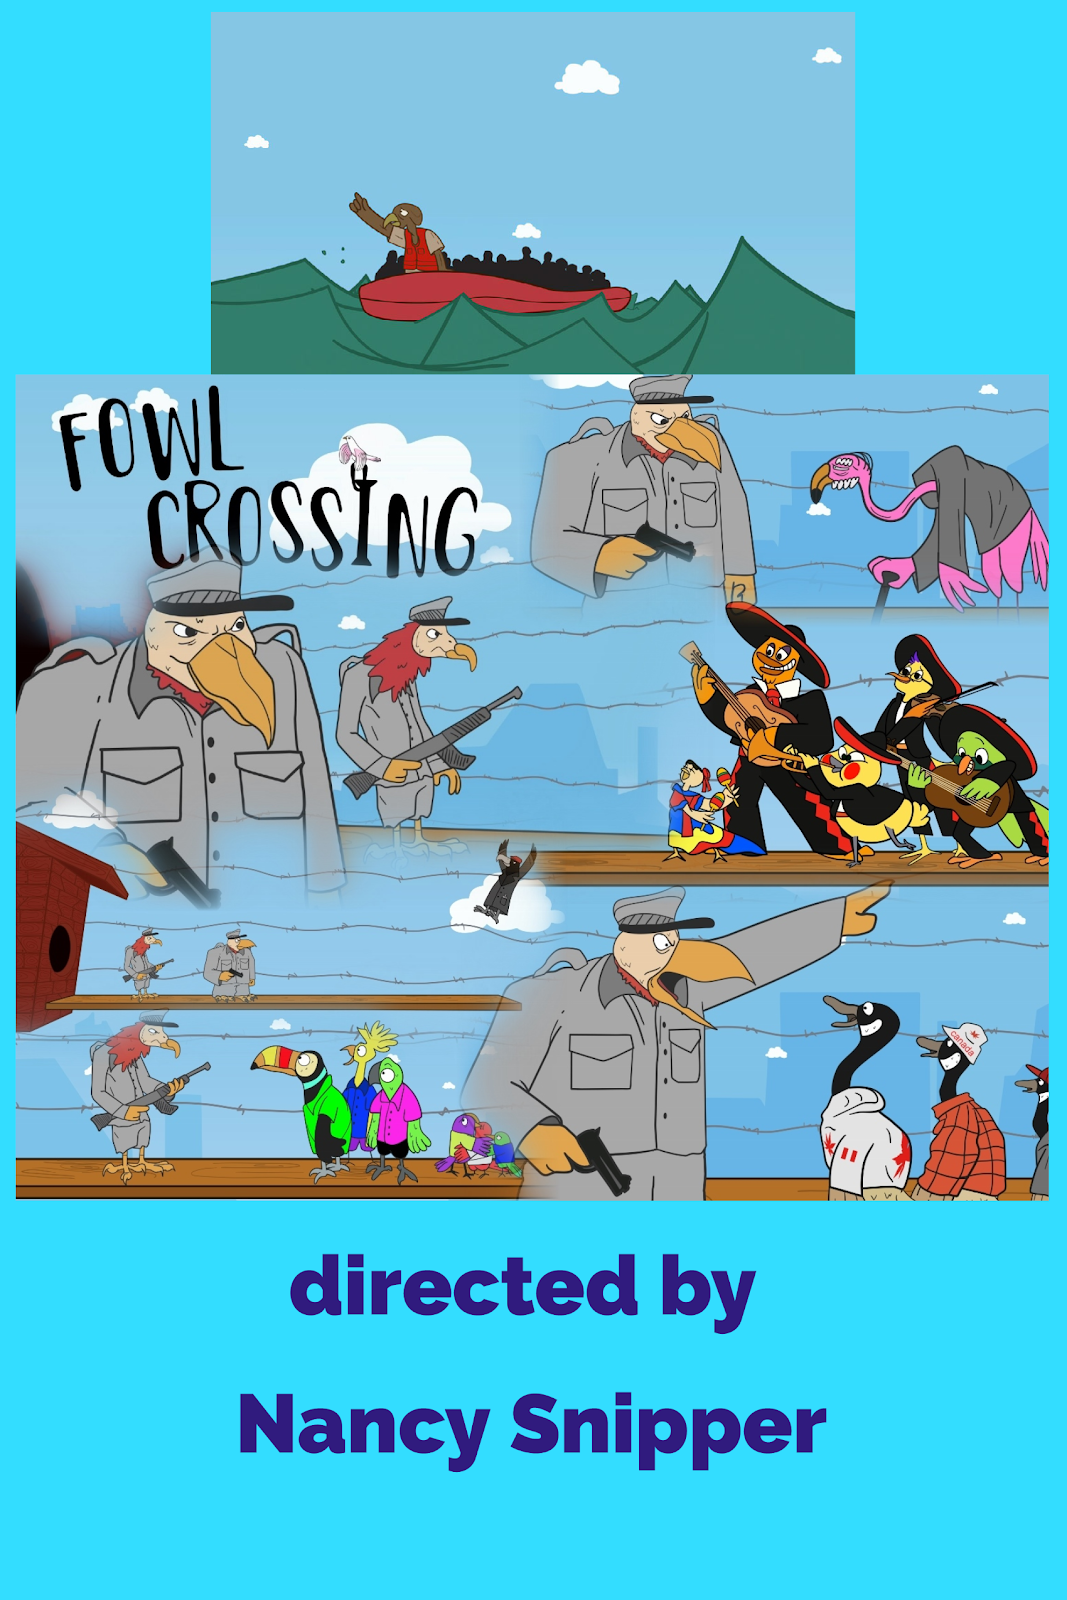 Fowl Crossing by Nancy Snipper